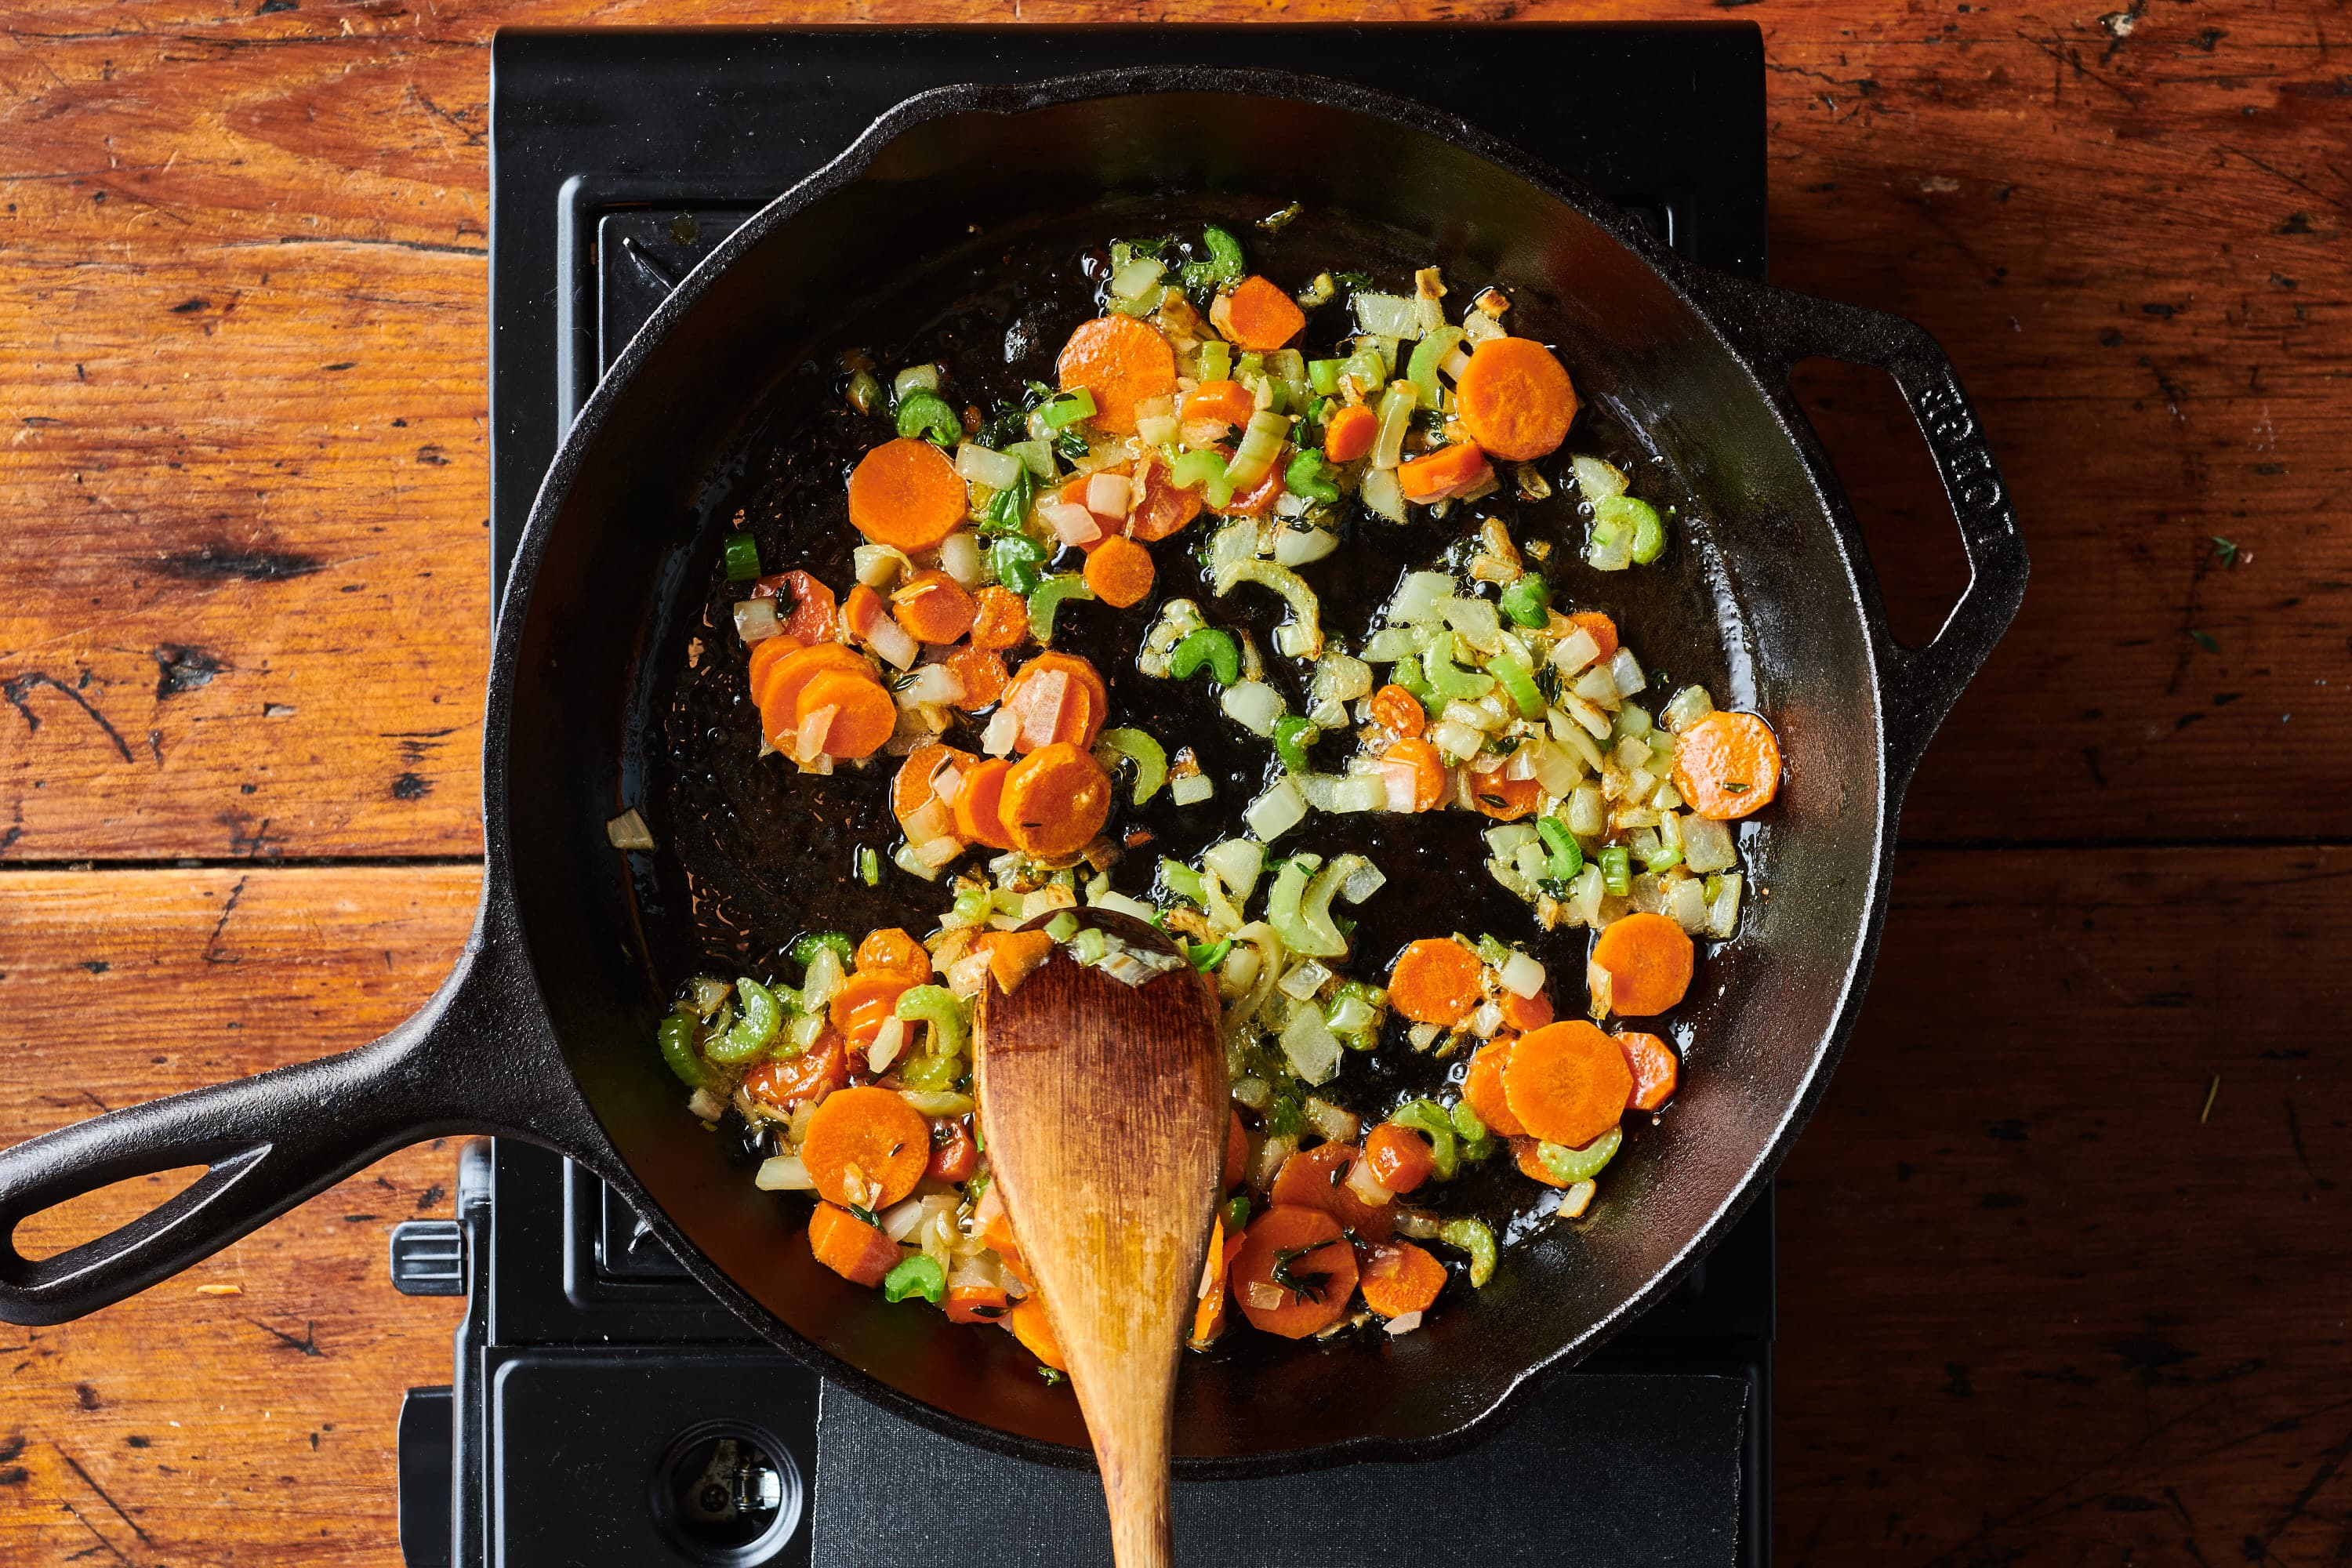 Carrots, celery and onion cooking in skillet.